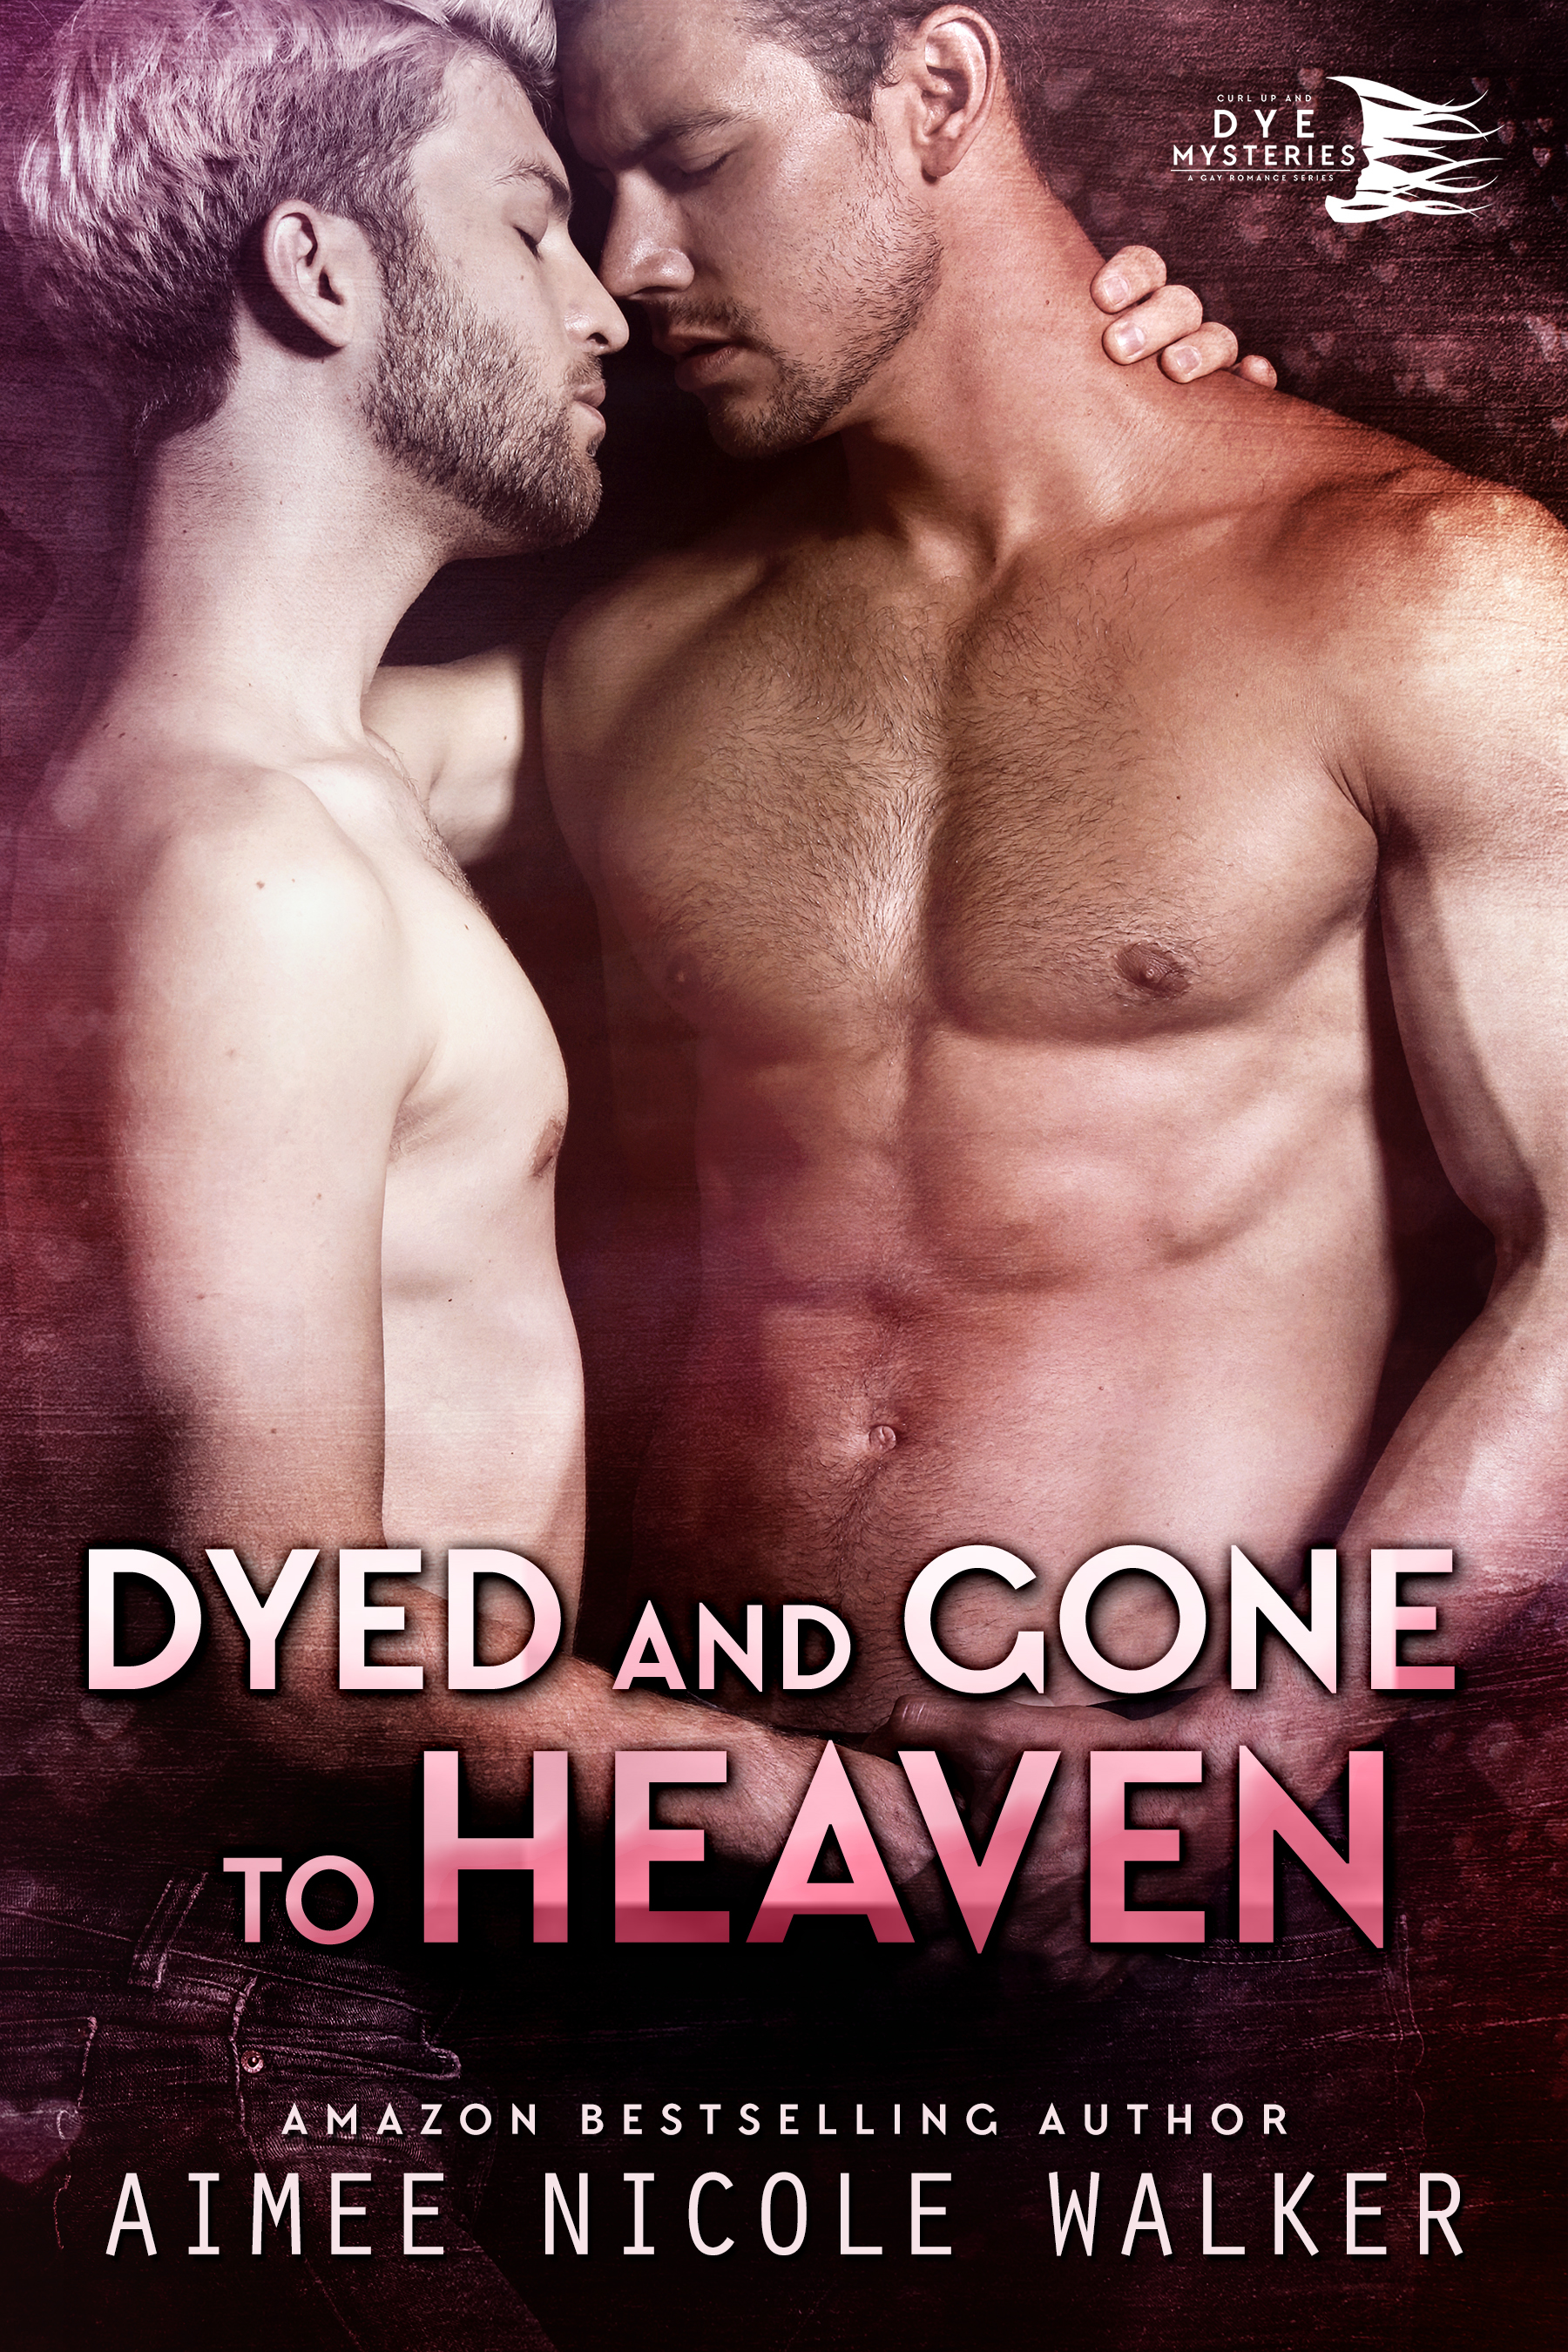 Dyed and Gone to Heaven (Curl Up and Dye Mysteries, #3)